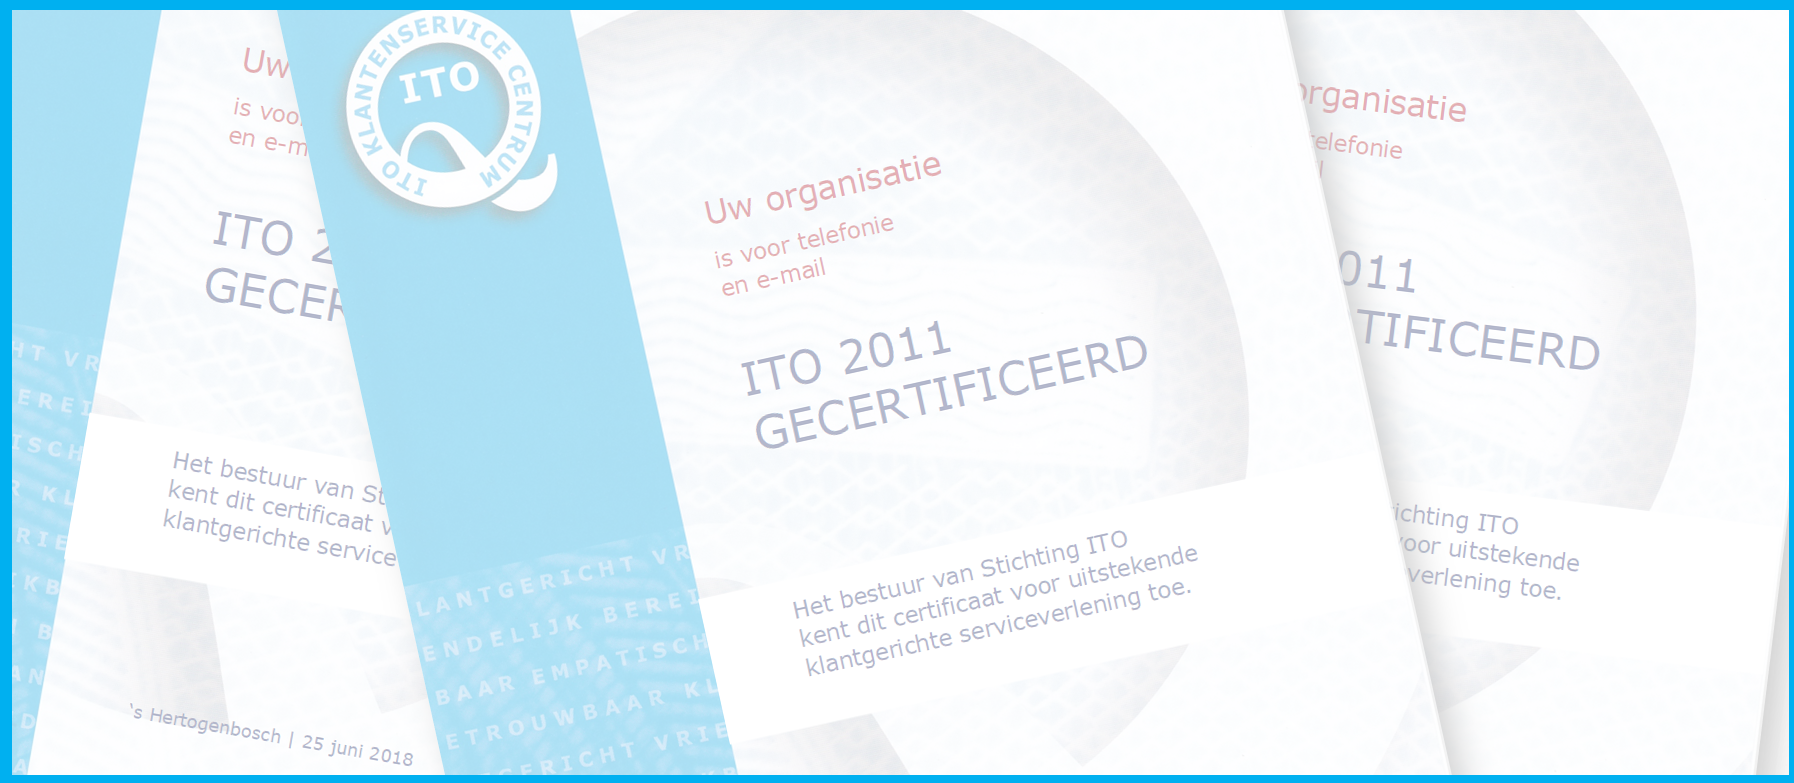 Categorie: Gecertificeerden